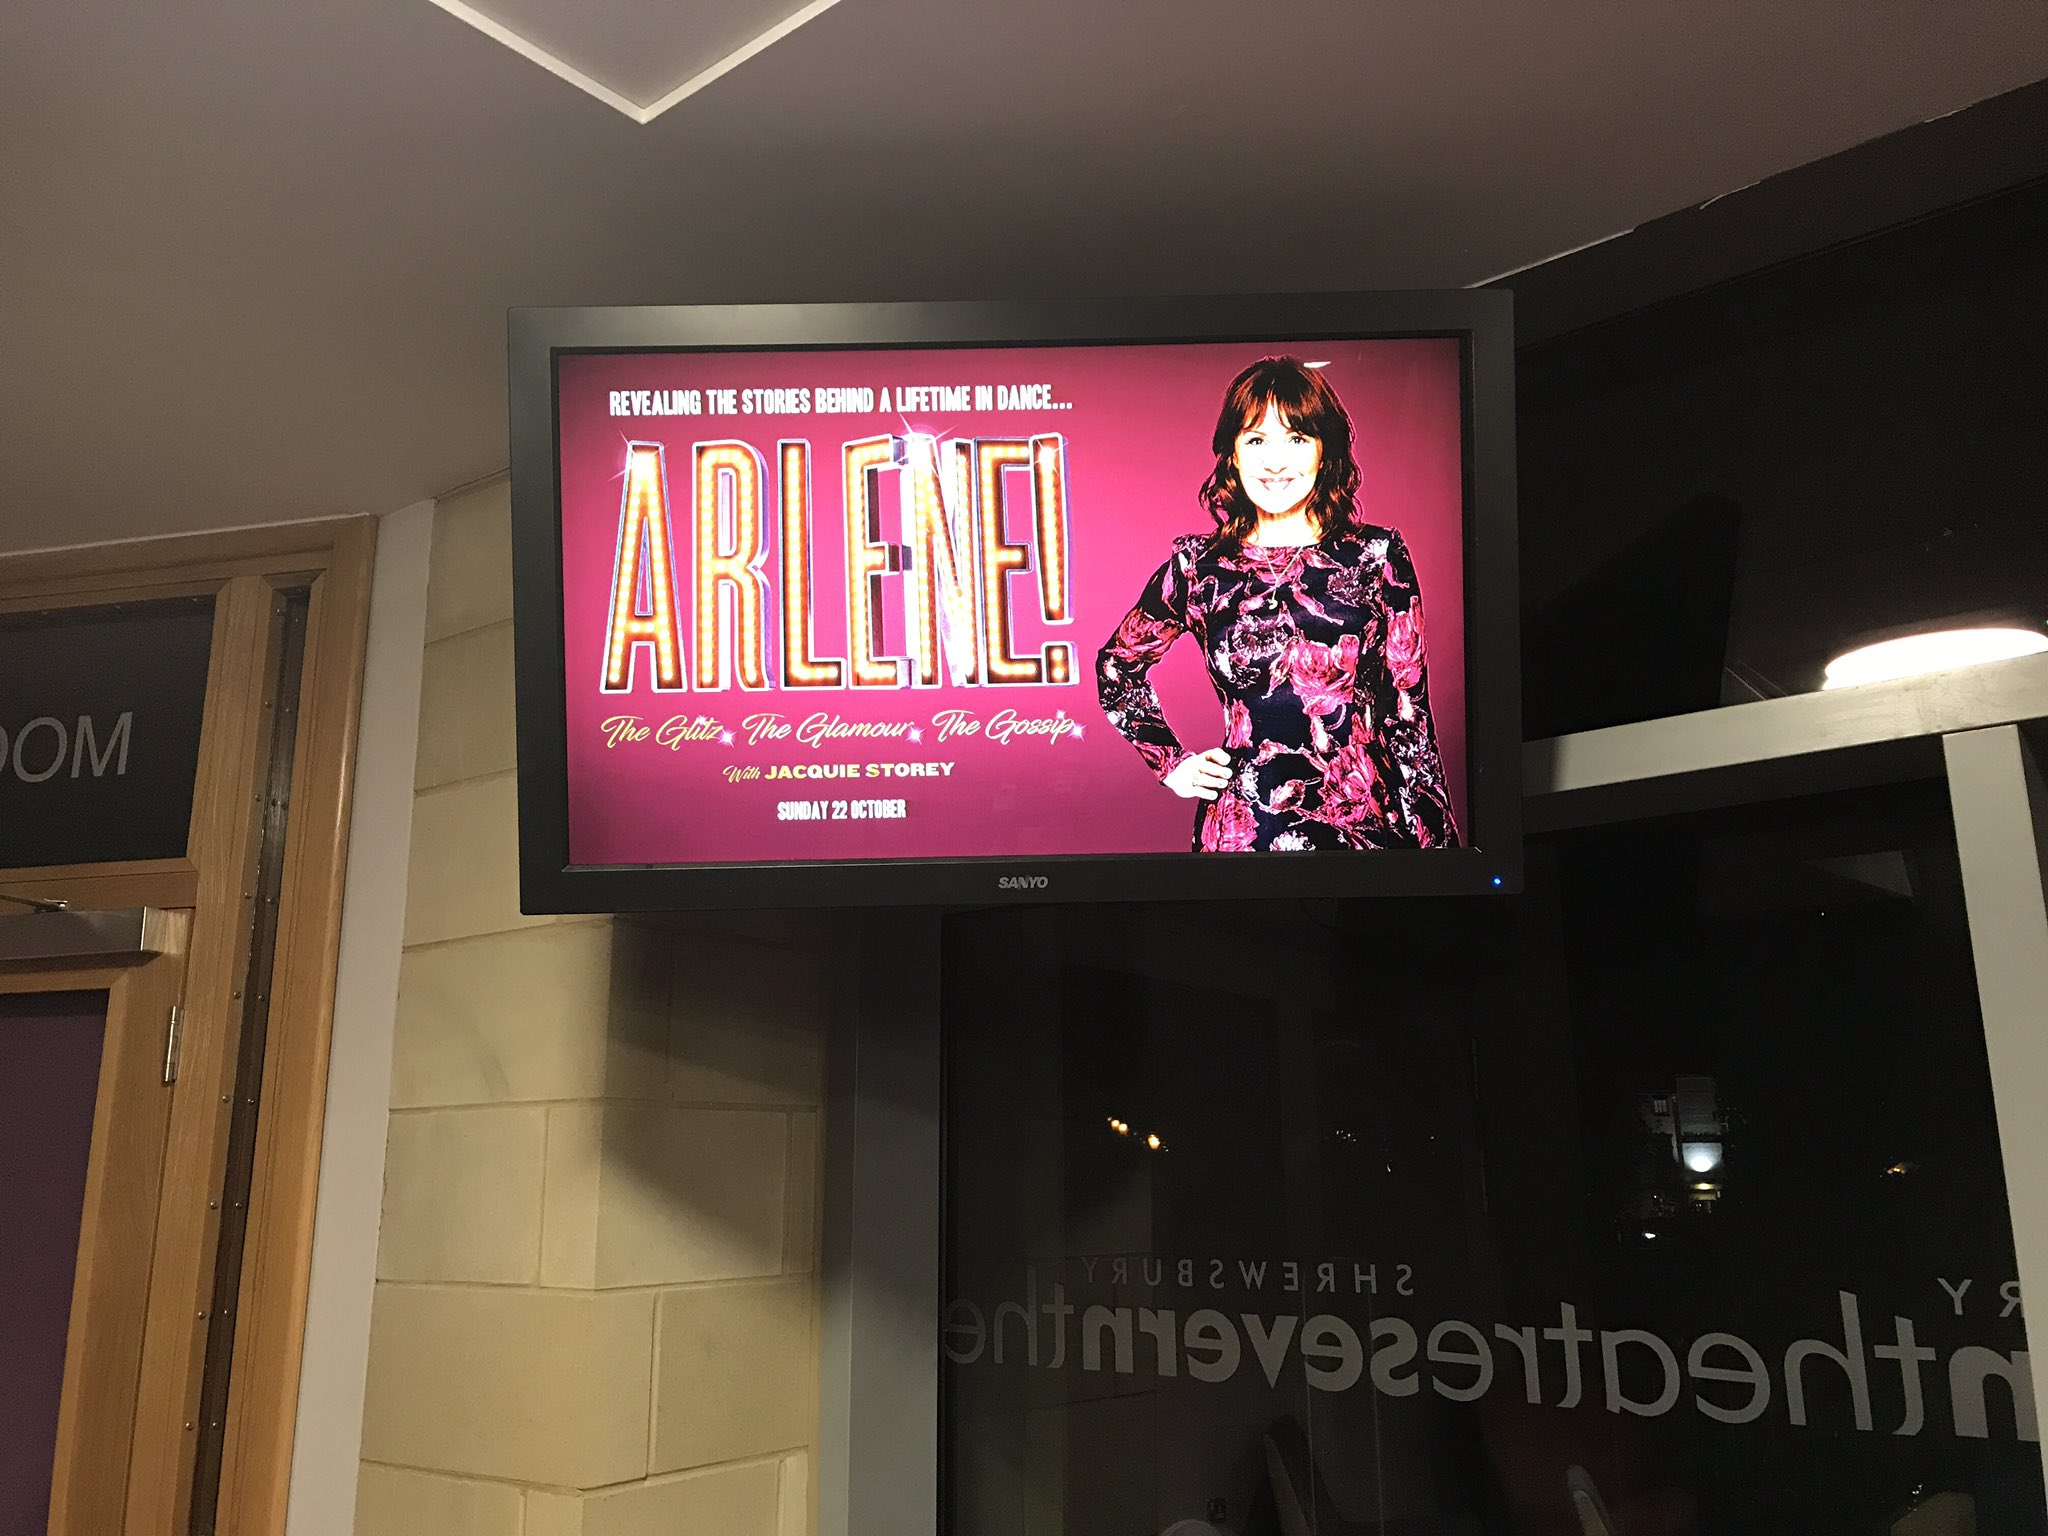 RT @CassiCompton: Ah, Hello @arlenephillips! 😘 #Shrewsbury #theatre #touring https://t.co/Wpz2XI78Wk